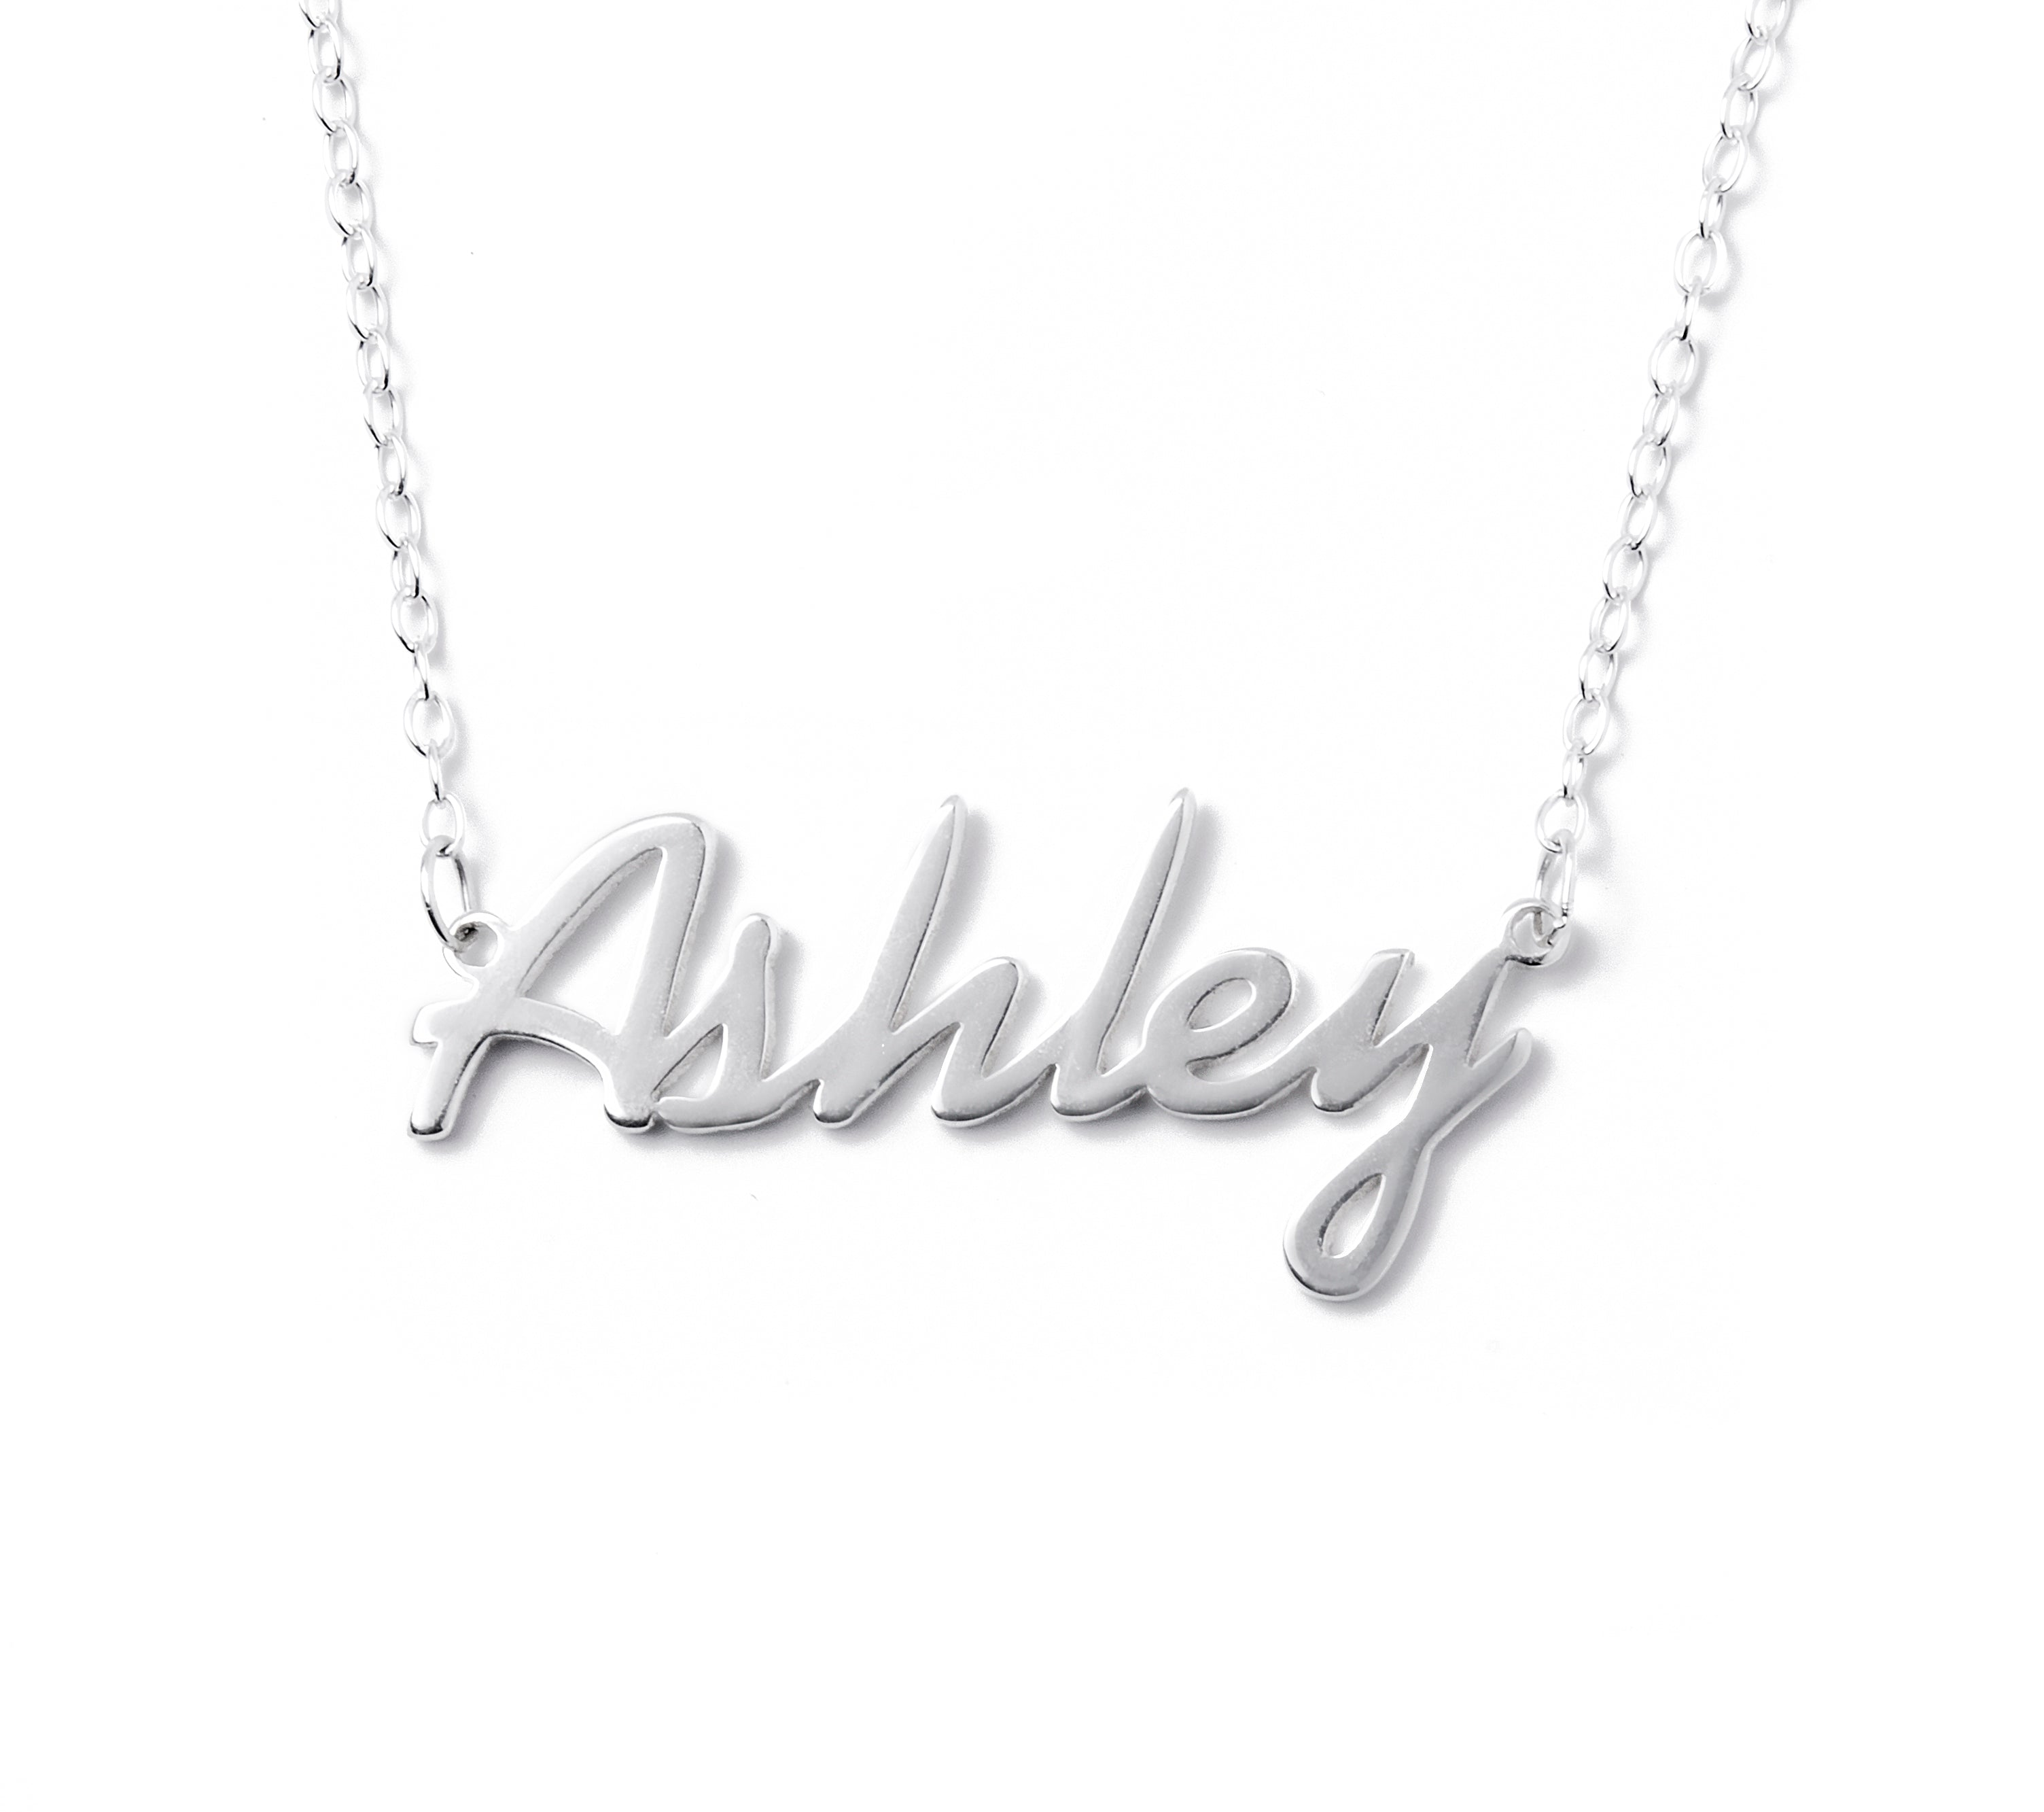 melody name hodo customnecklace necklace jewellery products on ehsani custom